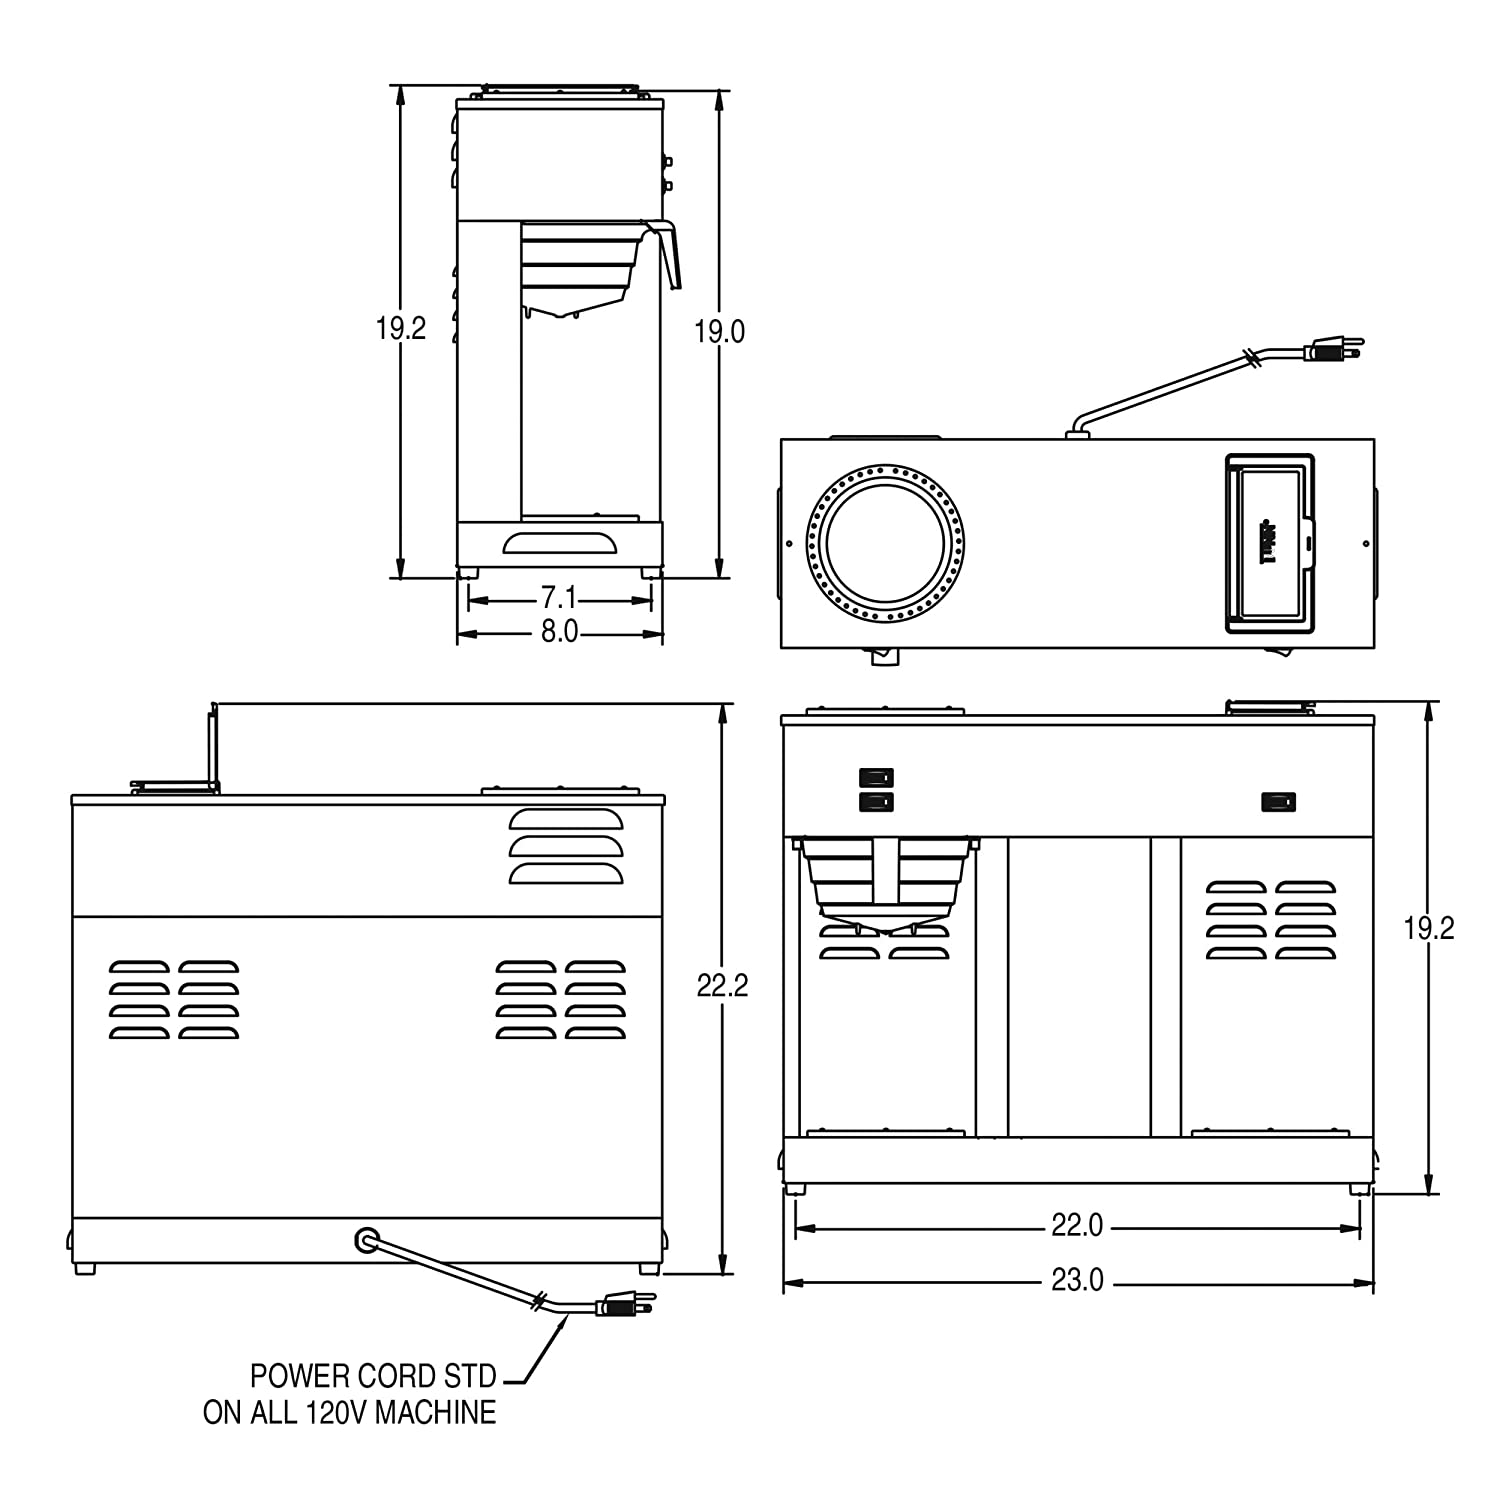 bunn vp 17 wiring diagram wiring library Kitchenaid Wiring Diagram vp17 series installation \u0026 operating guide amazon com bunn 04275 0031 vps 12 cup pourover commercial coffee brewer, with